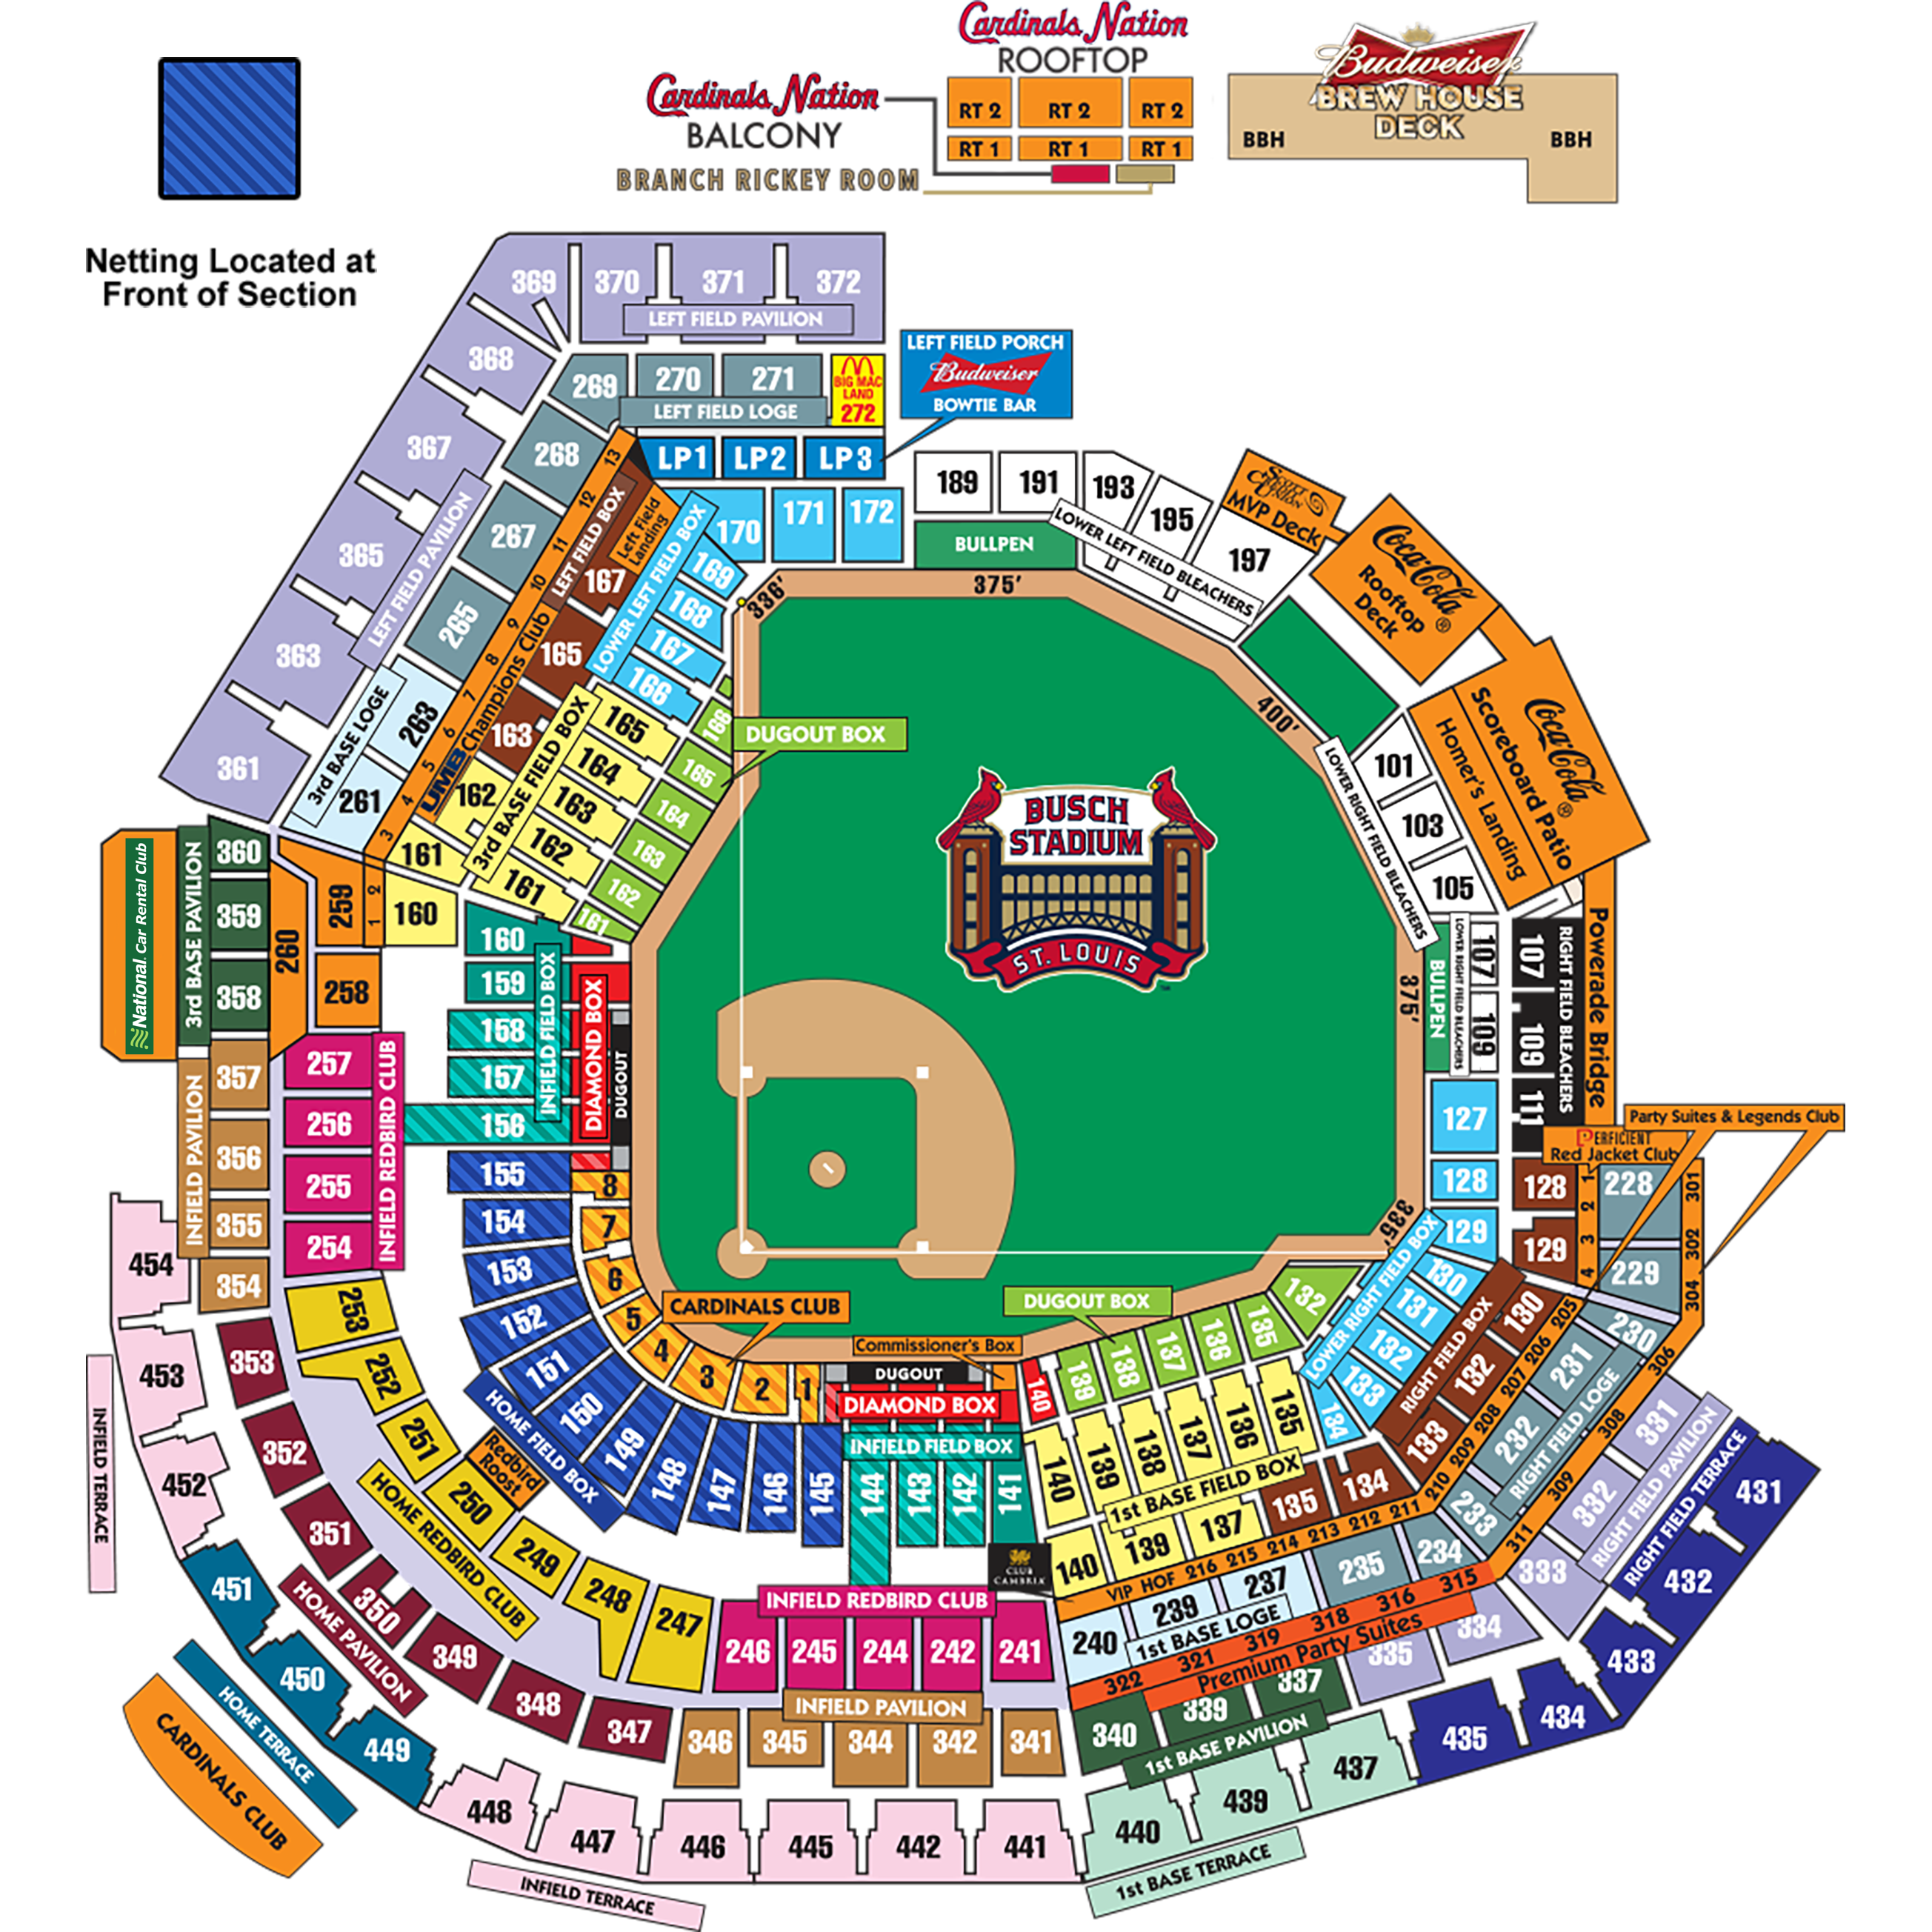 bush stadium seating chart | Brokeasshome.com